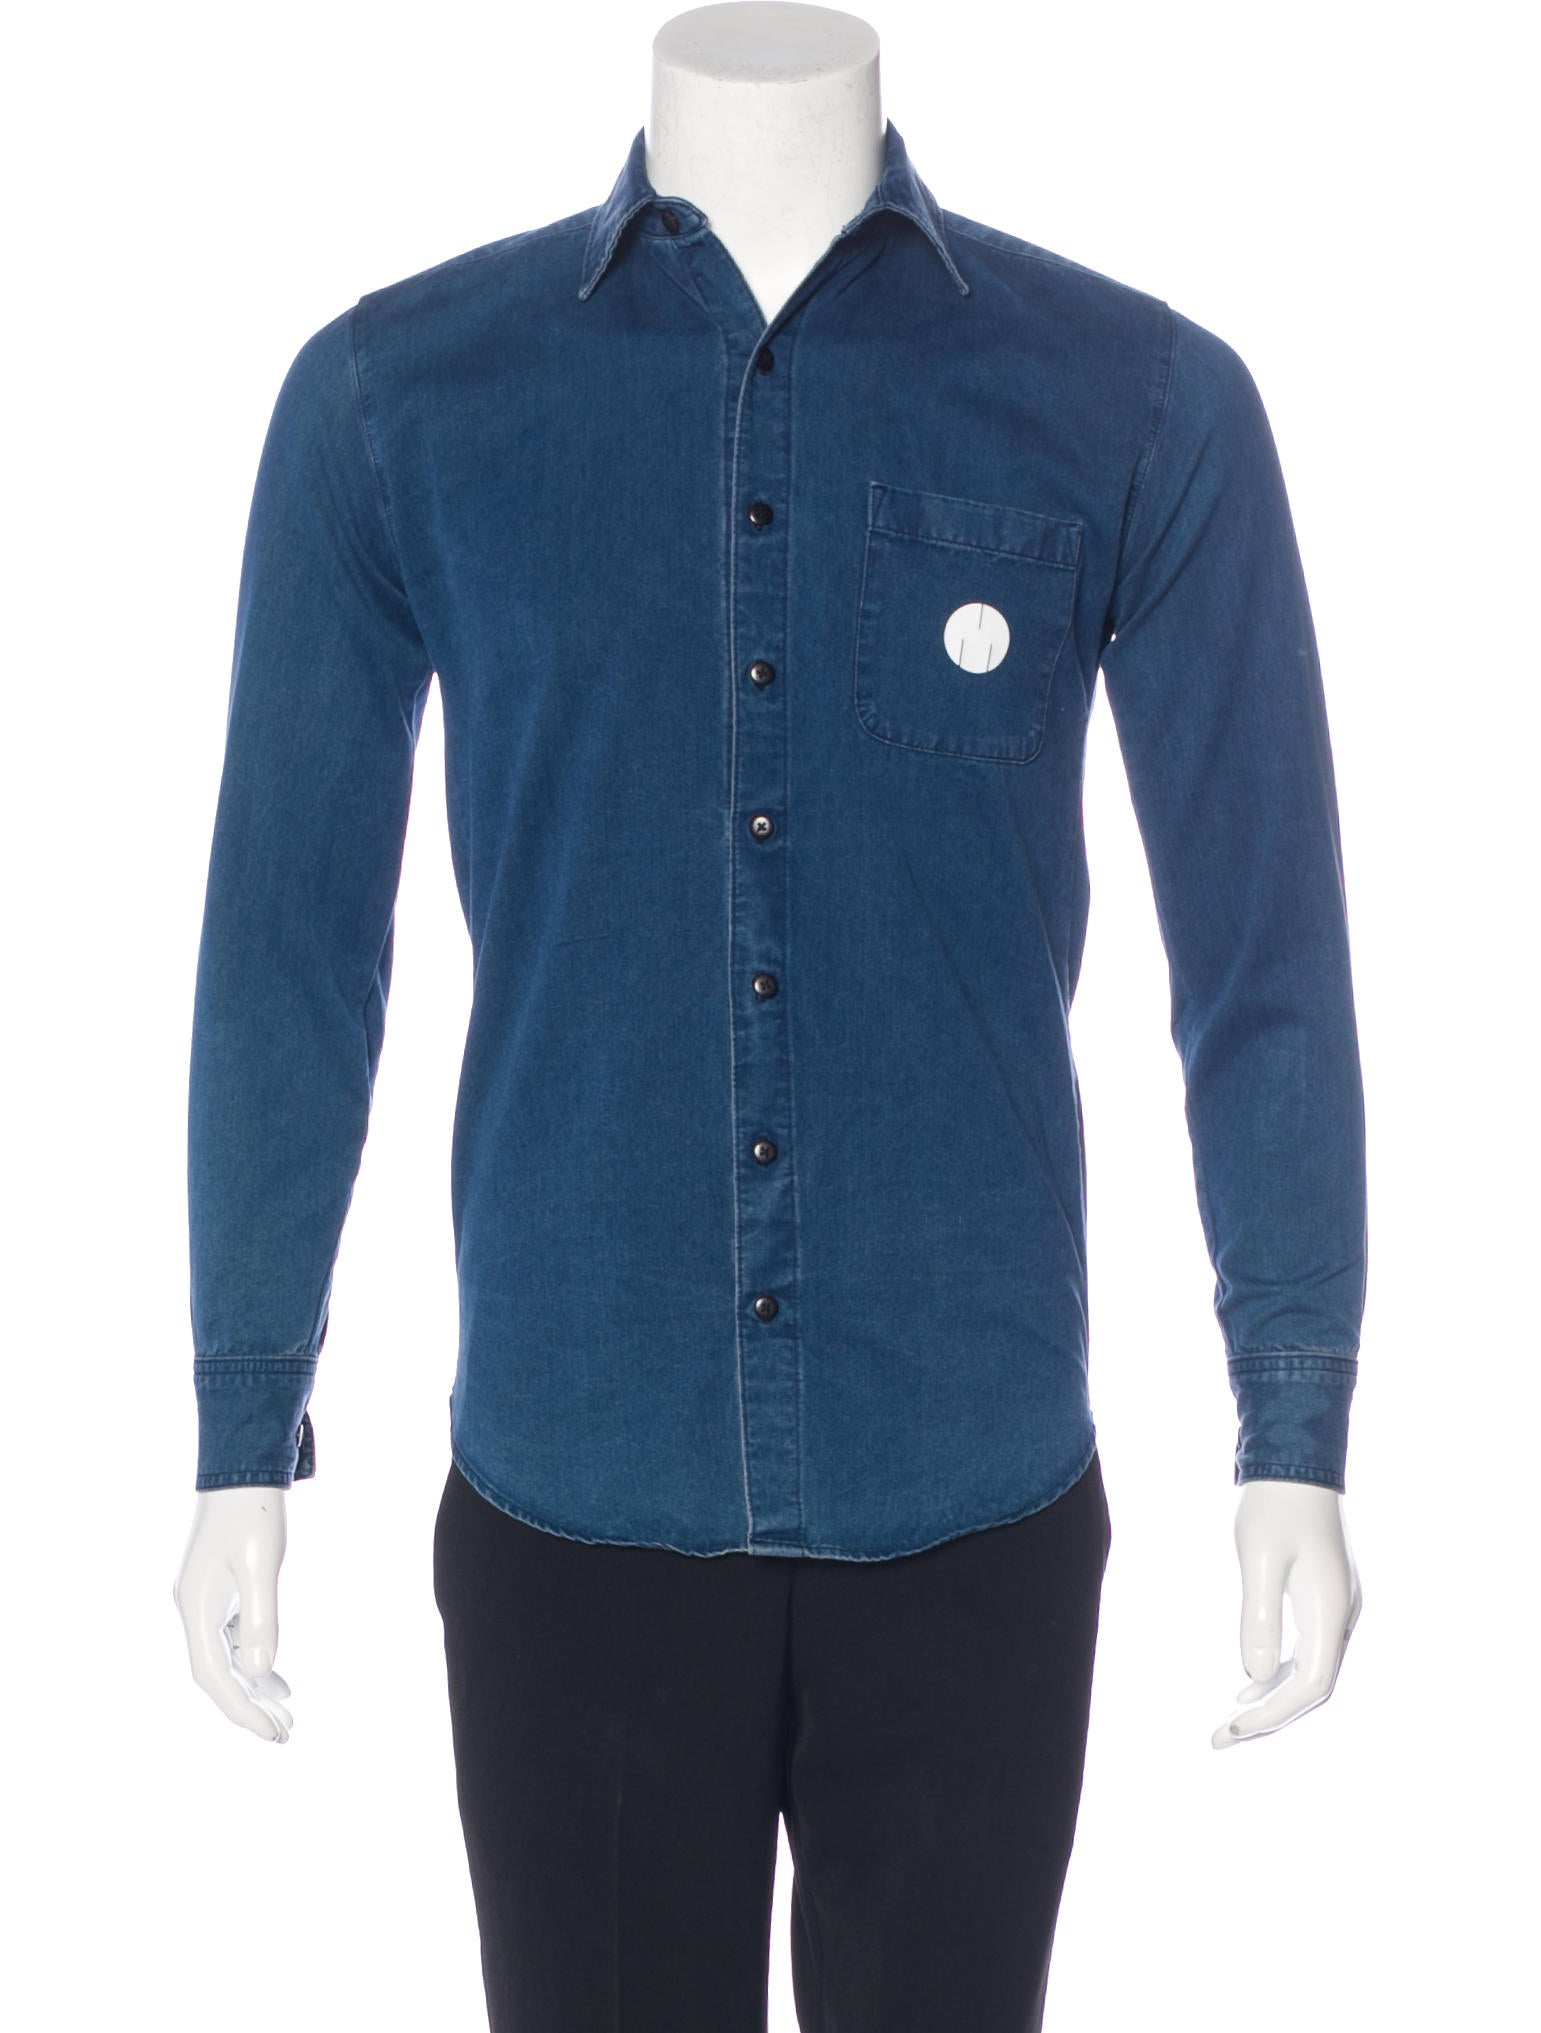 msftsrep chambray button-up shirt - clothing